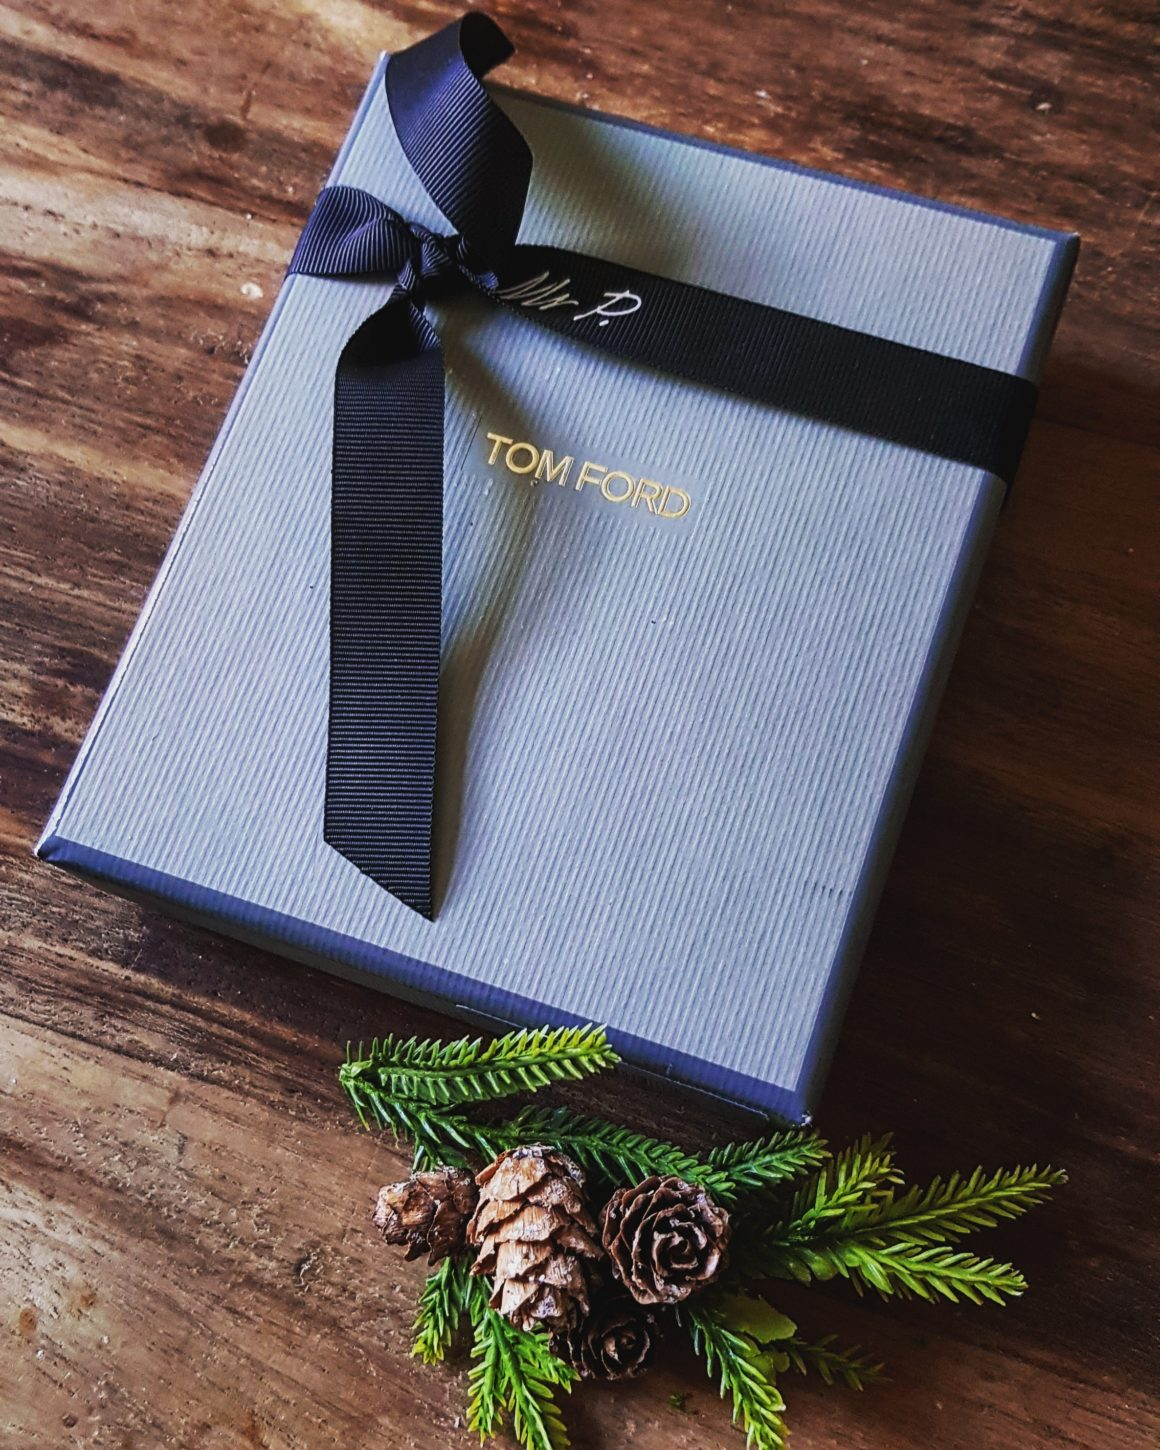 A concise guide to Christmas gifting TOM FORD